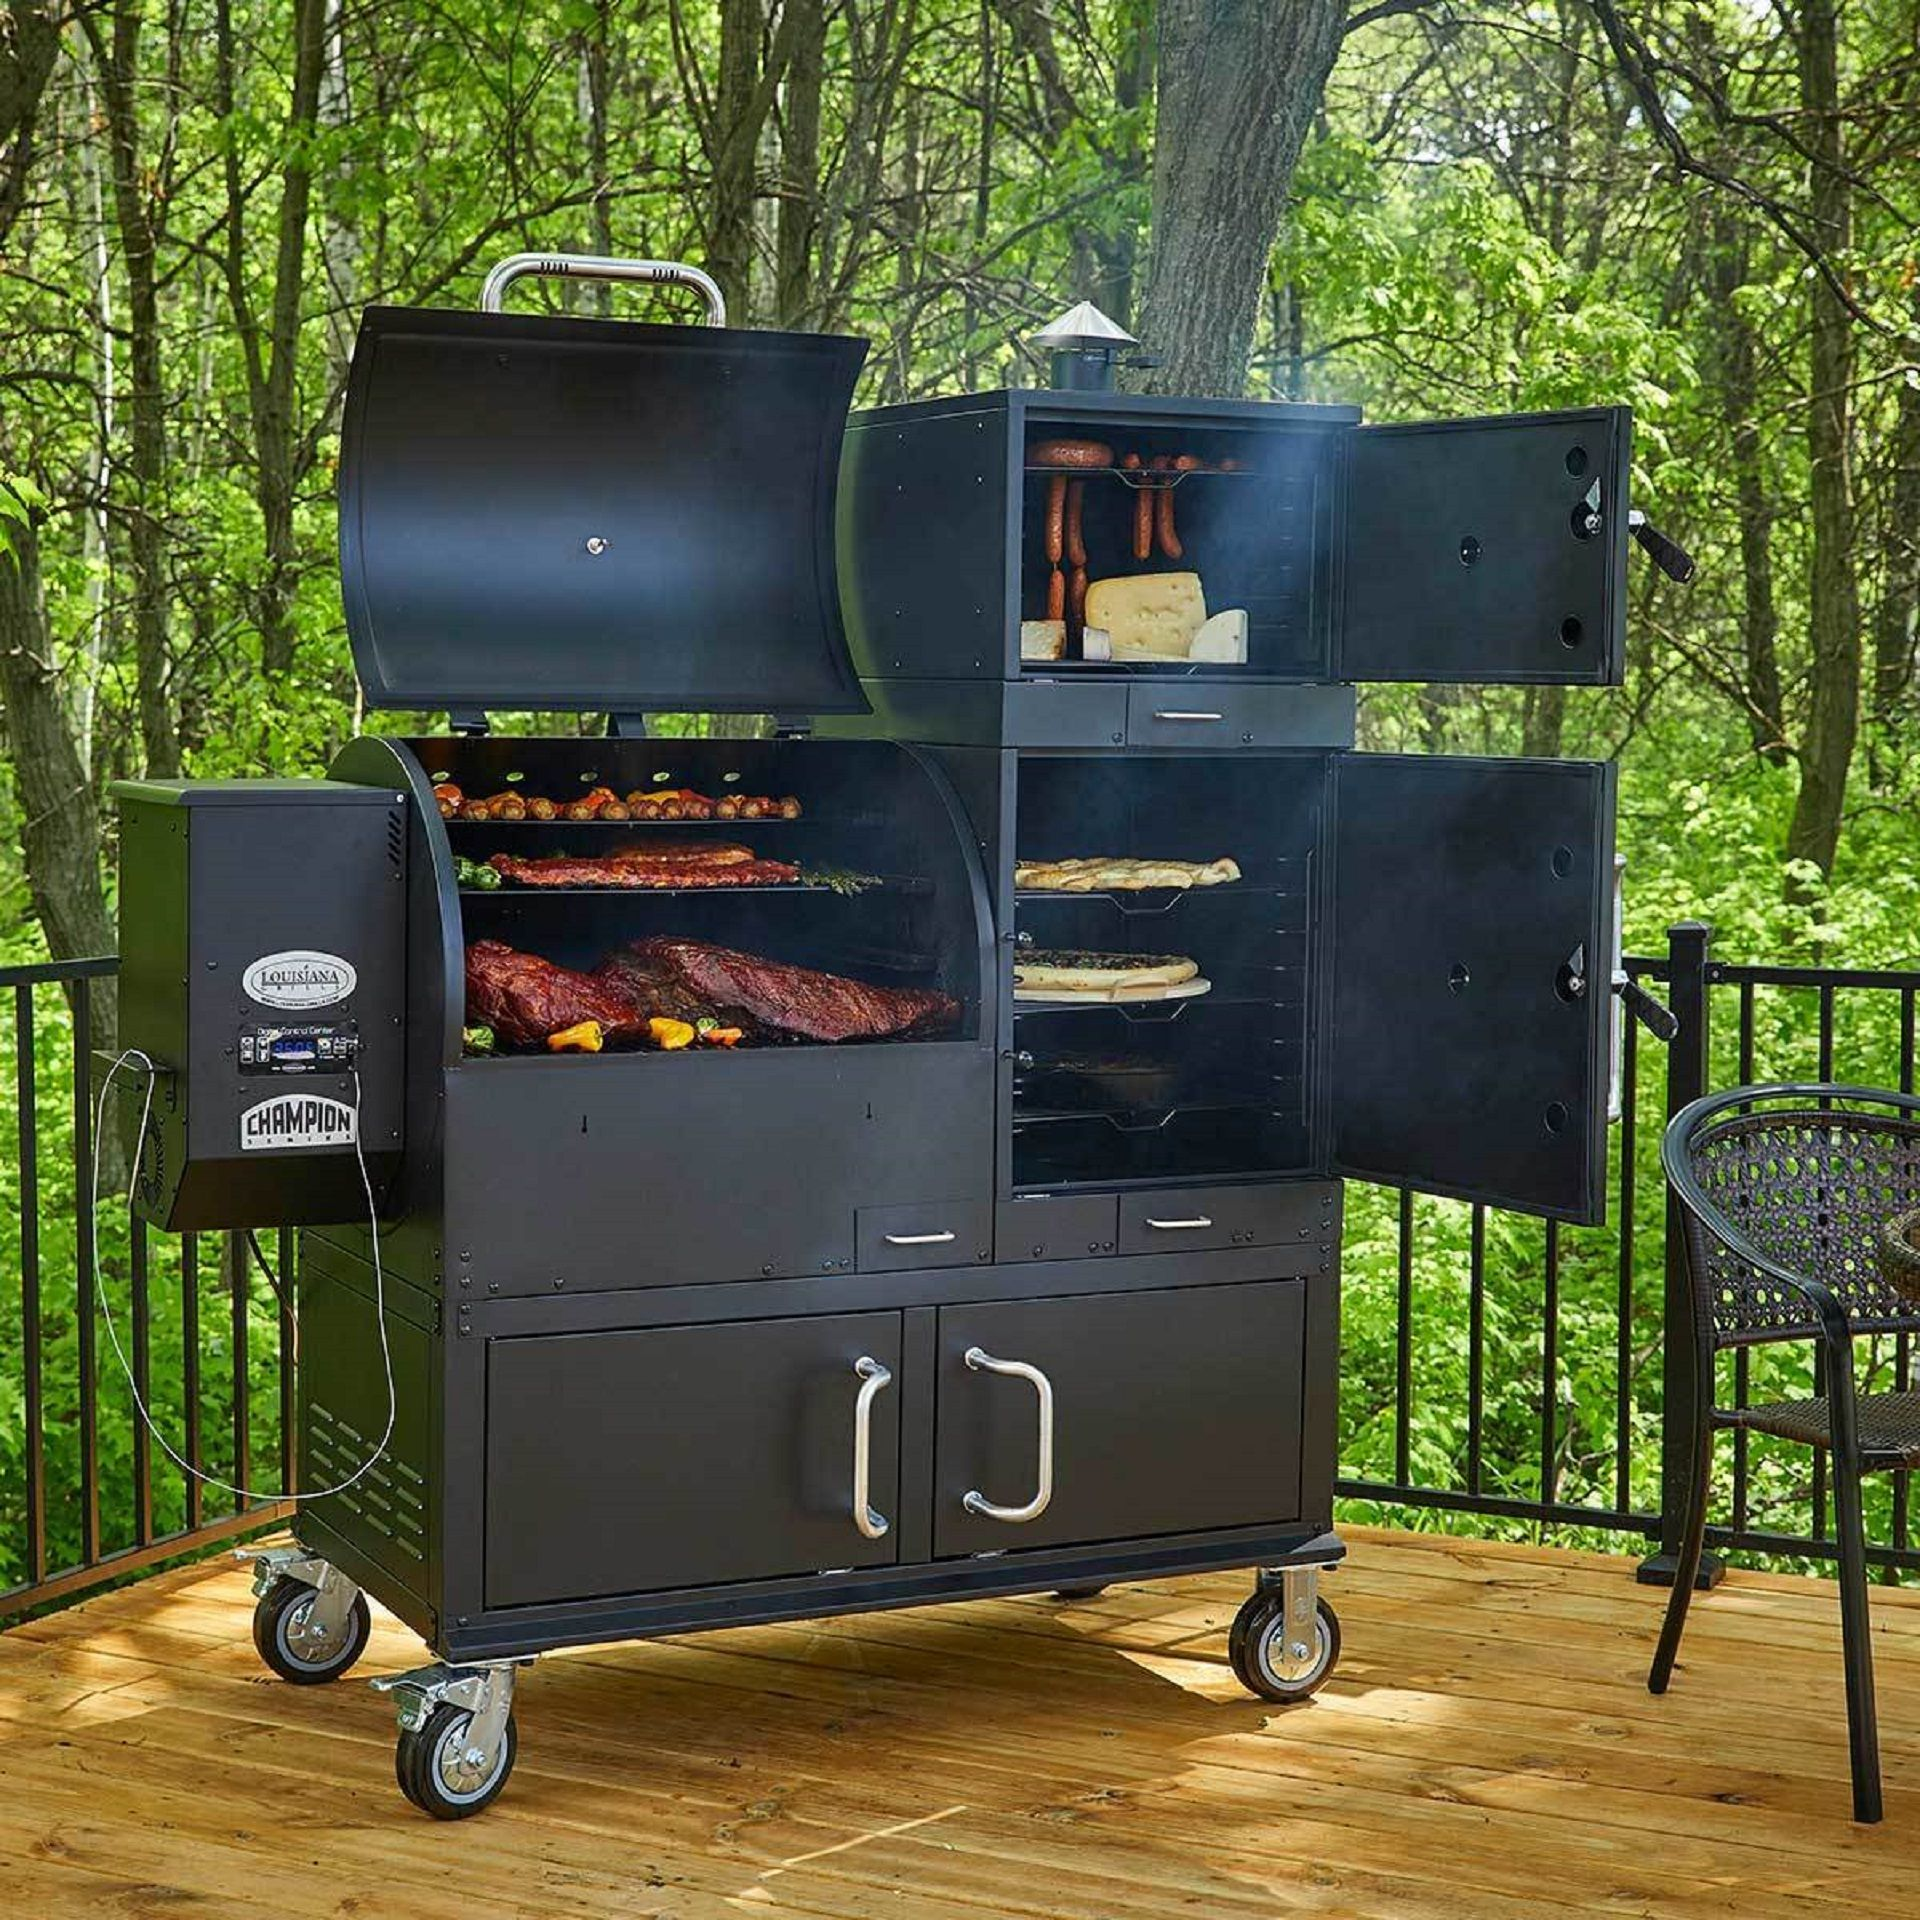 Louisiana Grills Champion Wood Pellet Grill and Smoker is ...